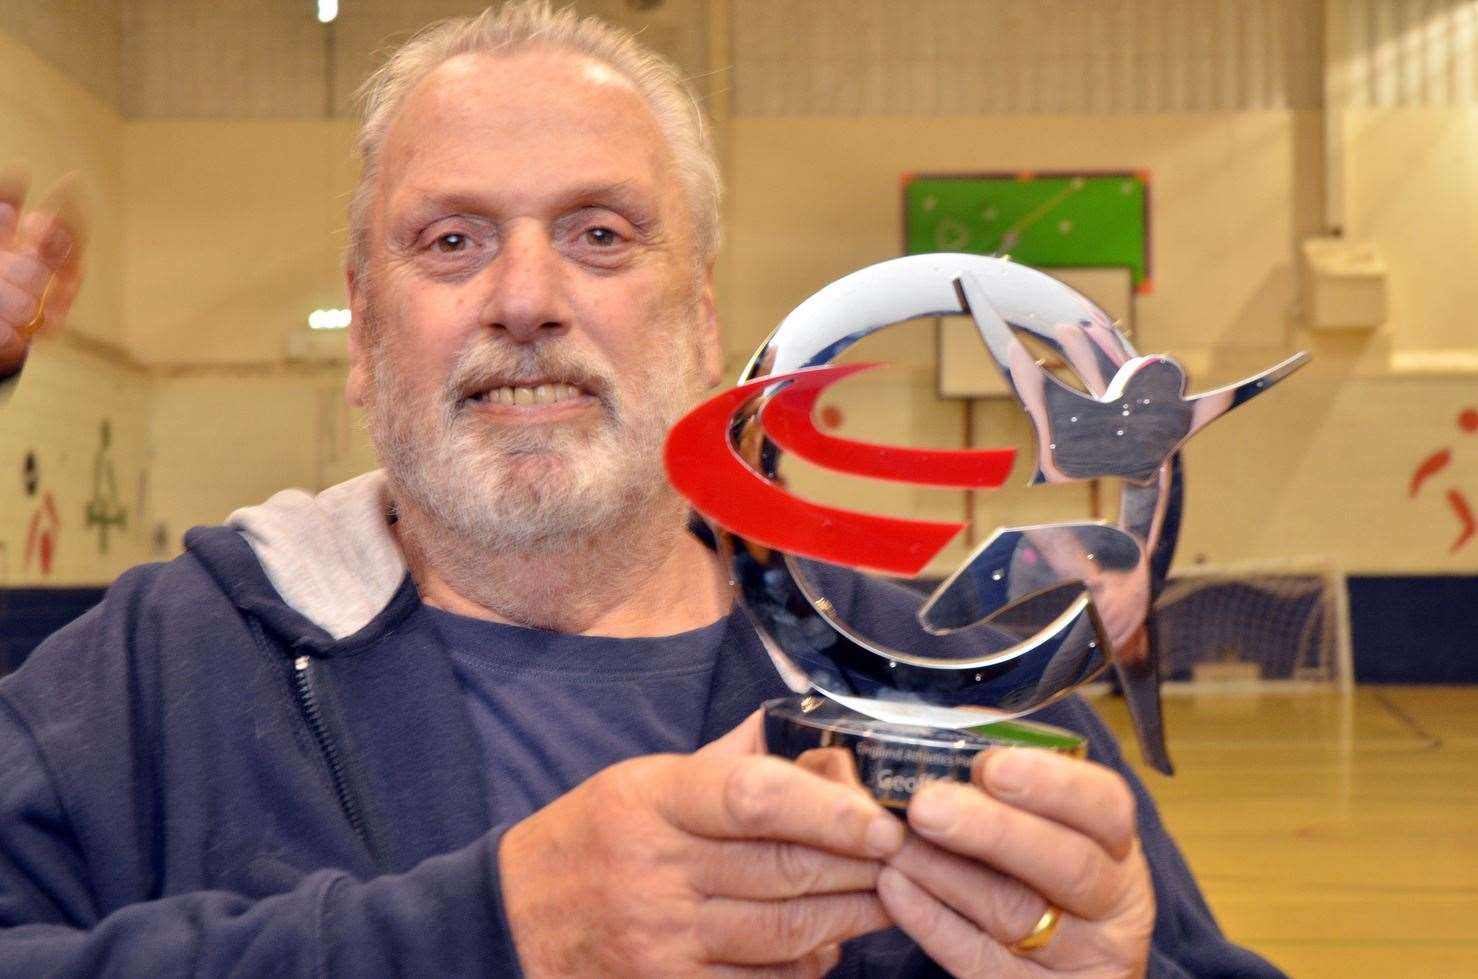 Former World's Strongest Man Geoff Capes will be refereeing the South Lincolnshire's Strongest 2019 competition at this year's Holbeach Food Festival on the Sunday. (4920362)